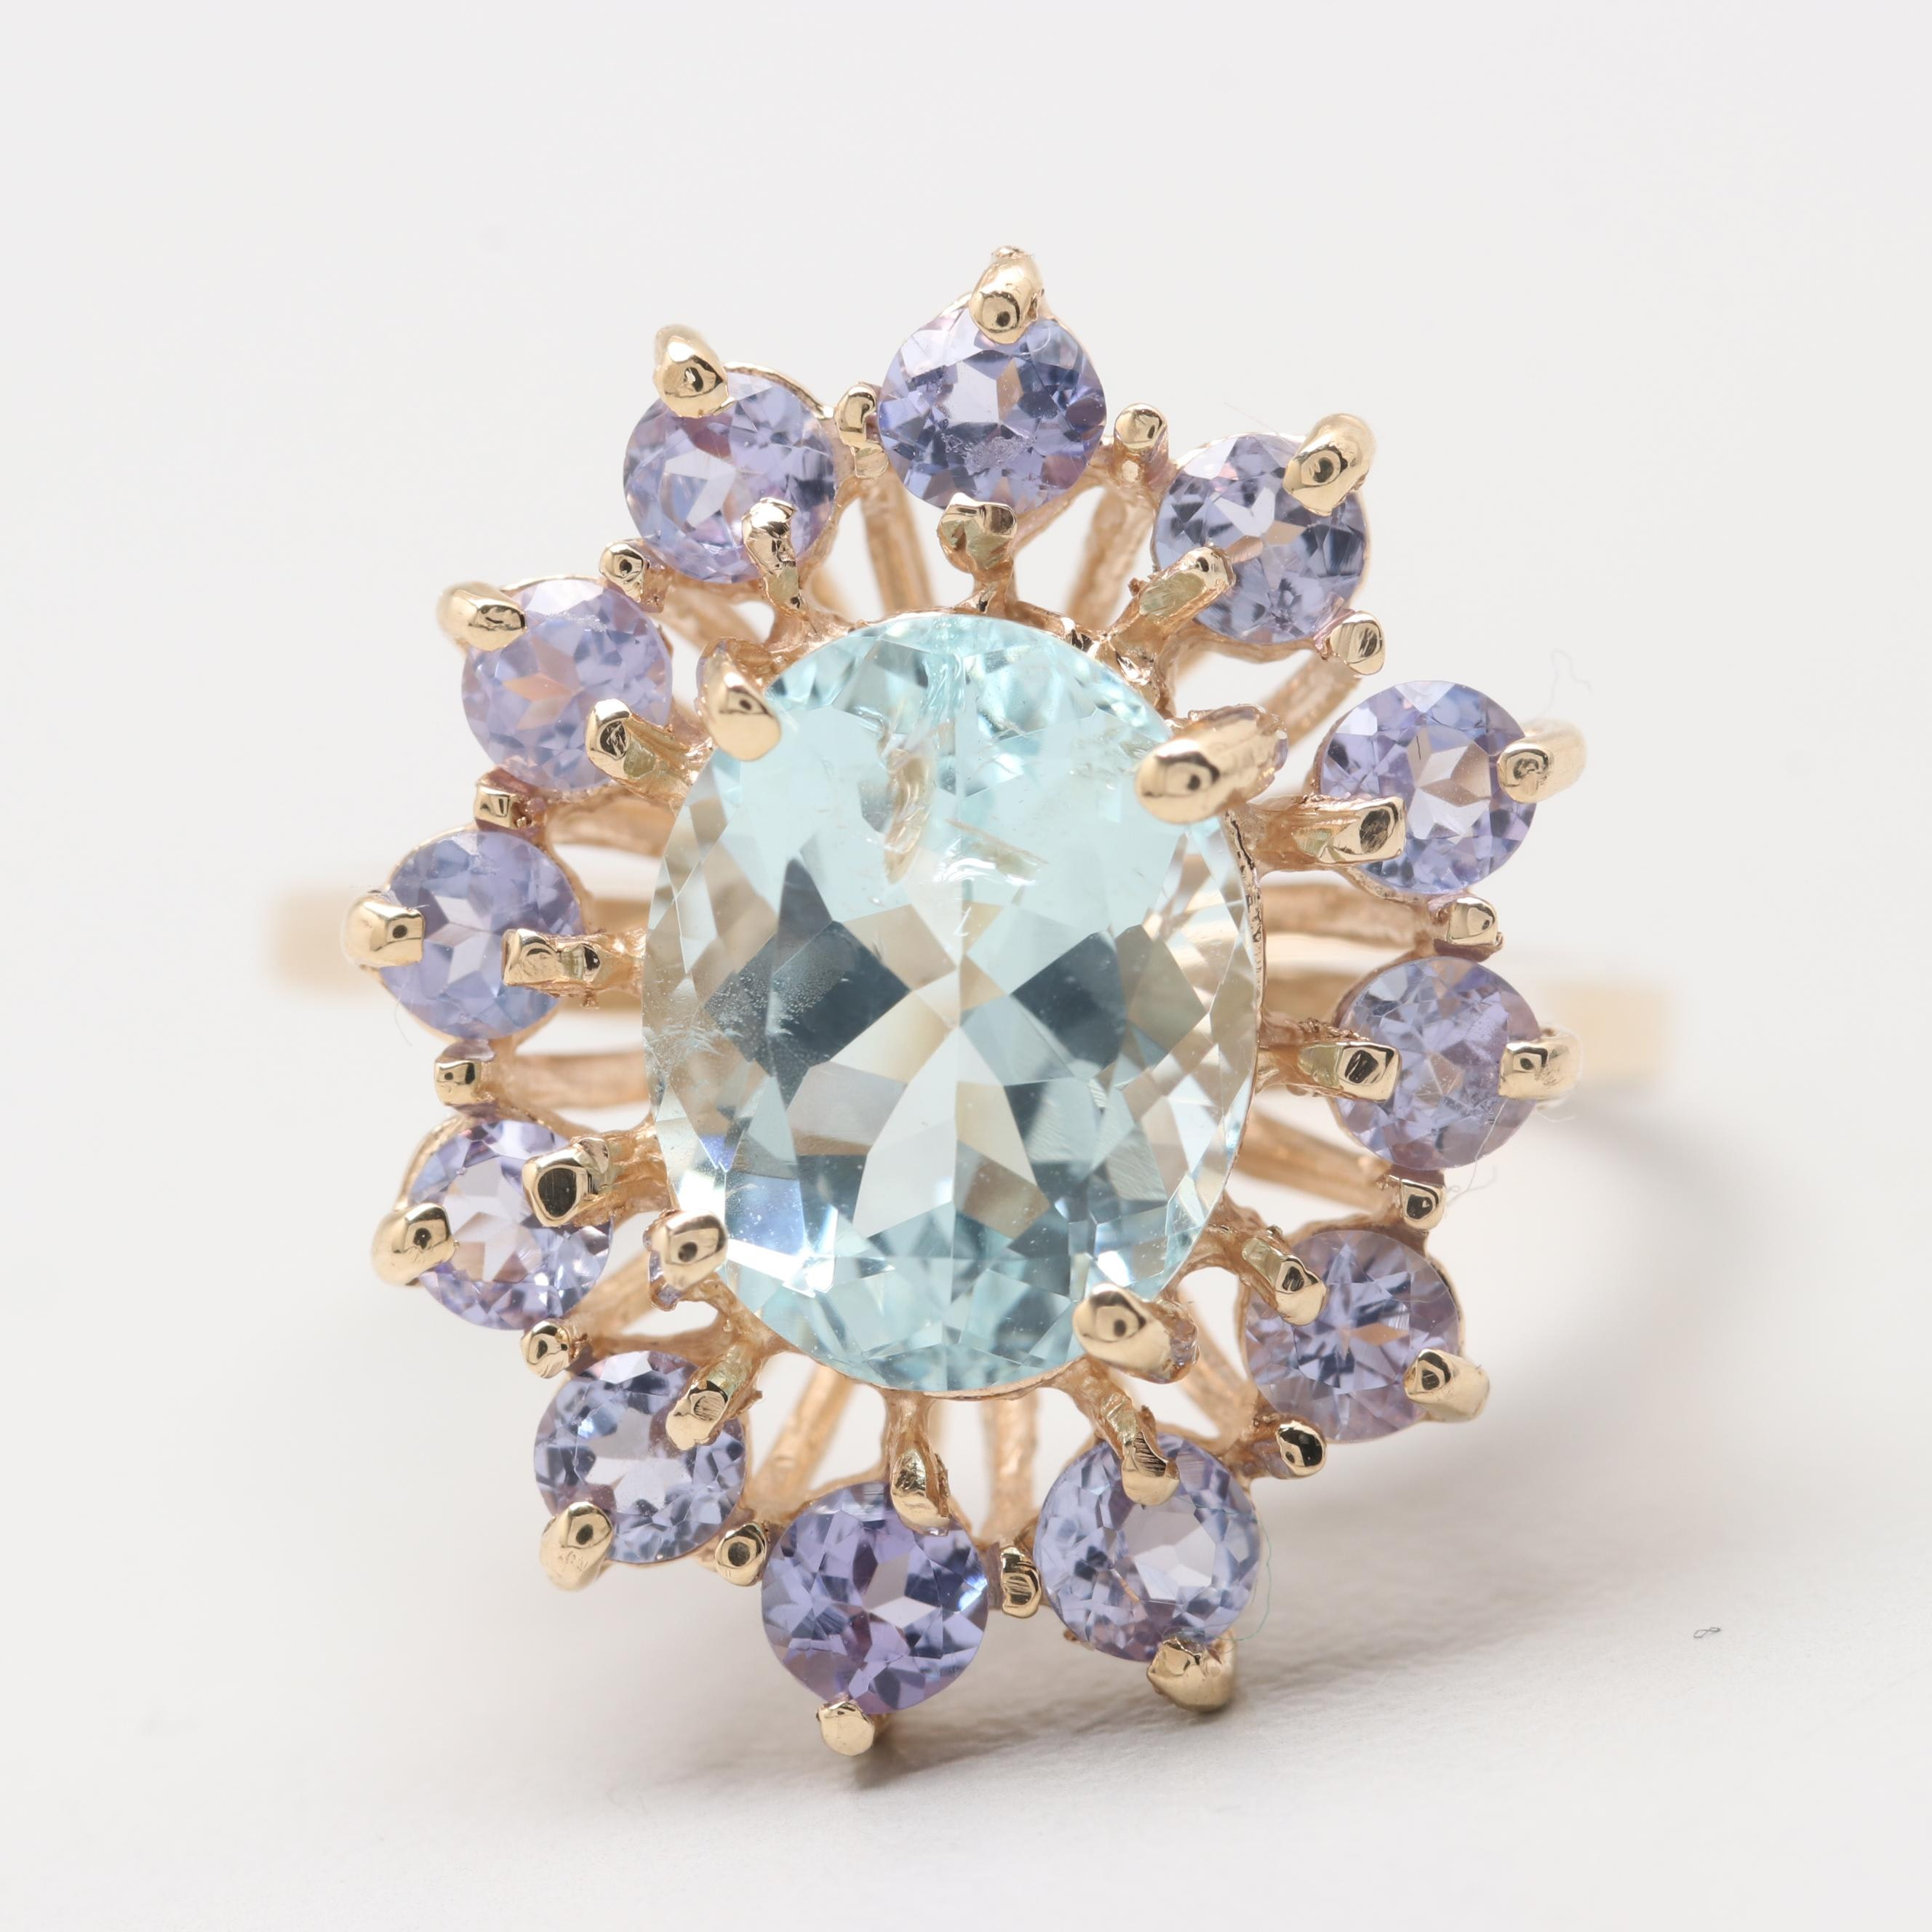 10K Yellow Gold Aquamarine and Tanzanite Ring